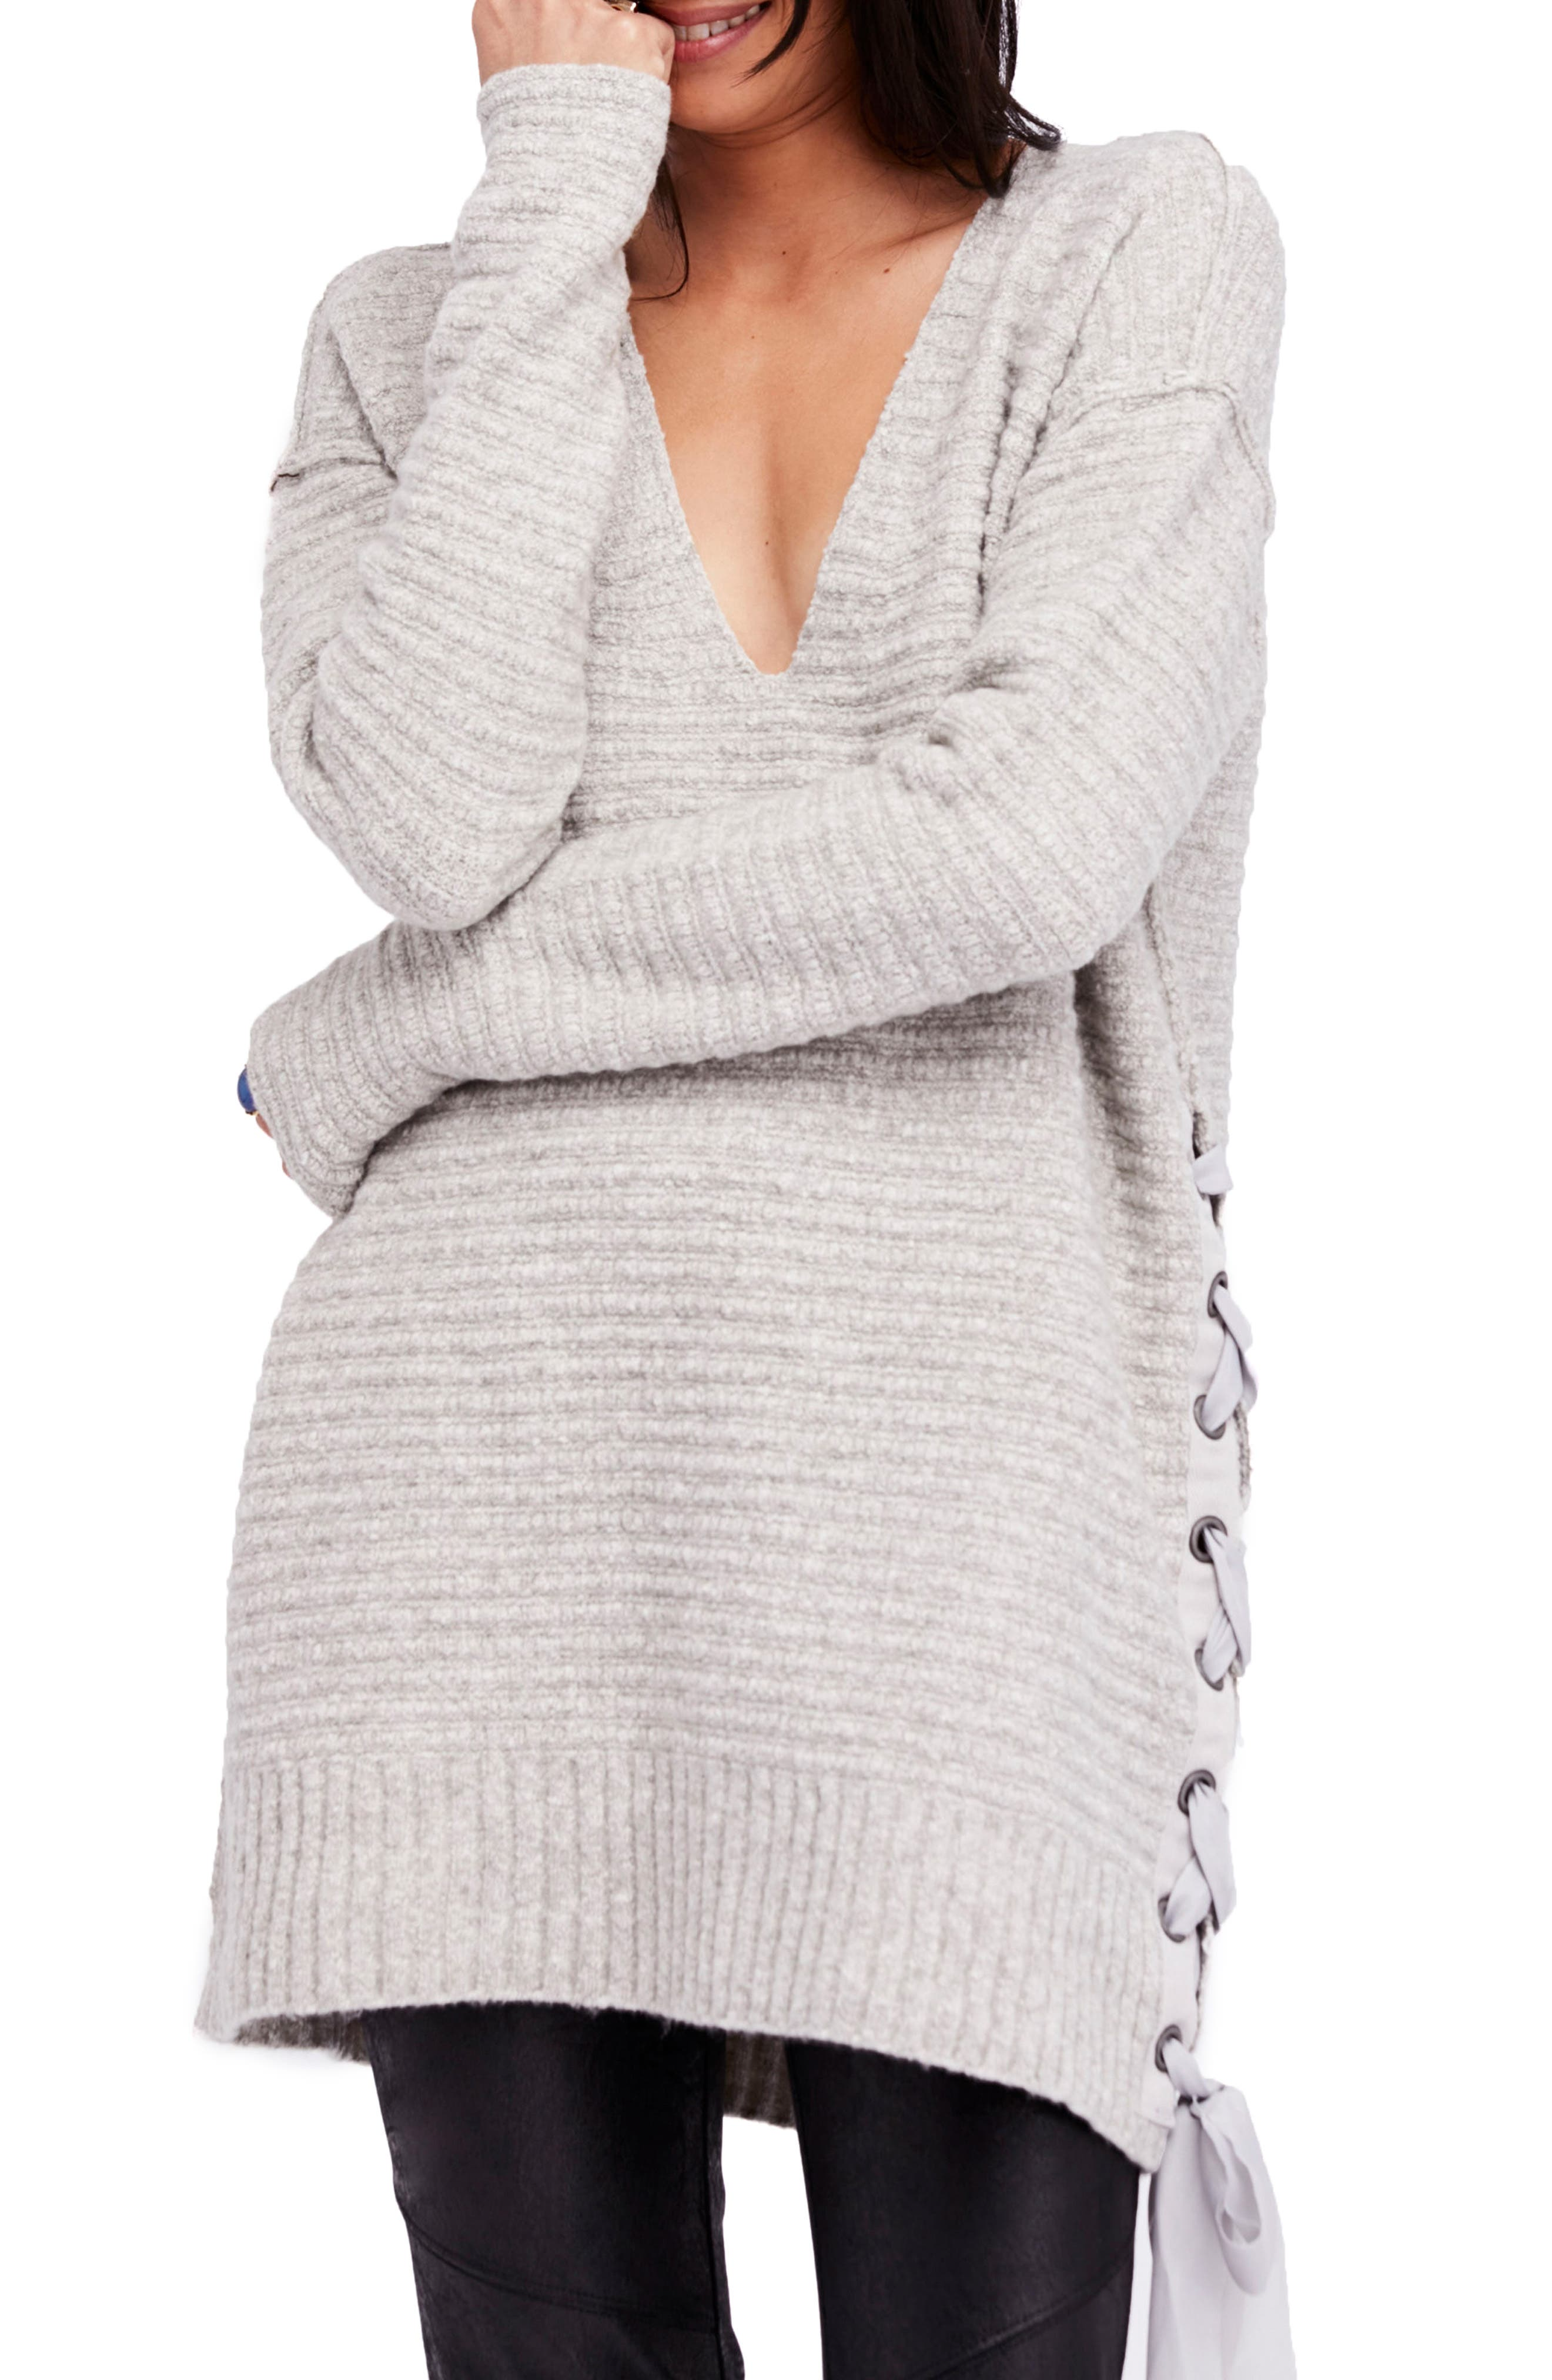 Heart It Laces Sweater,                         Main,                         color, Grey